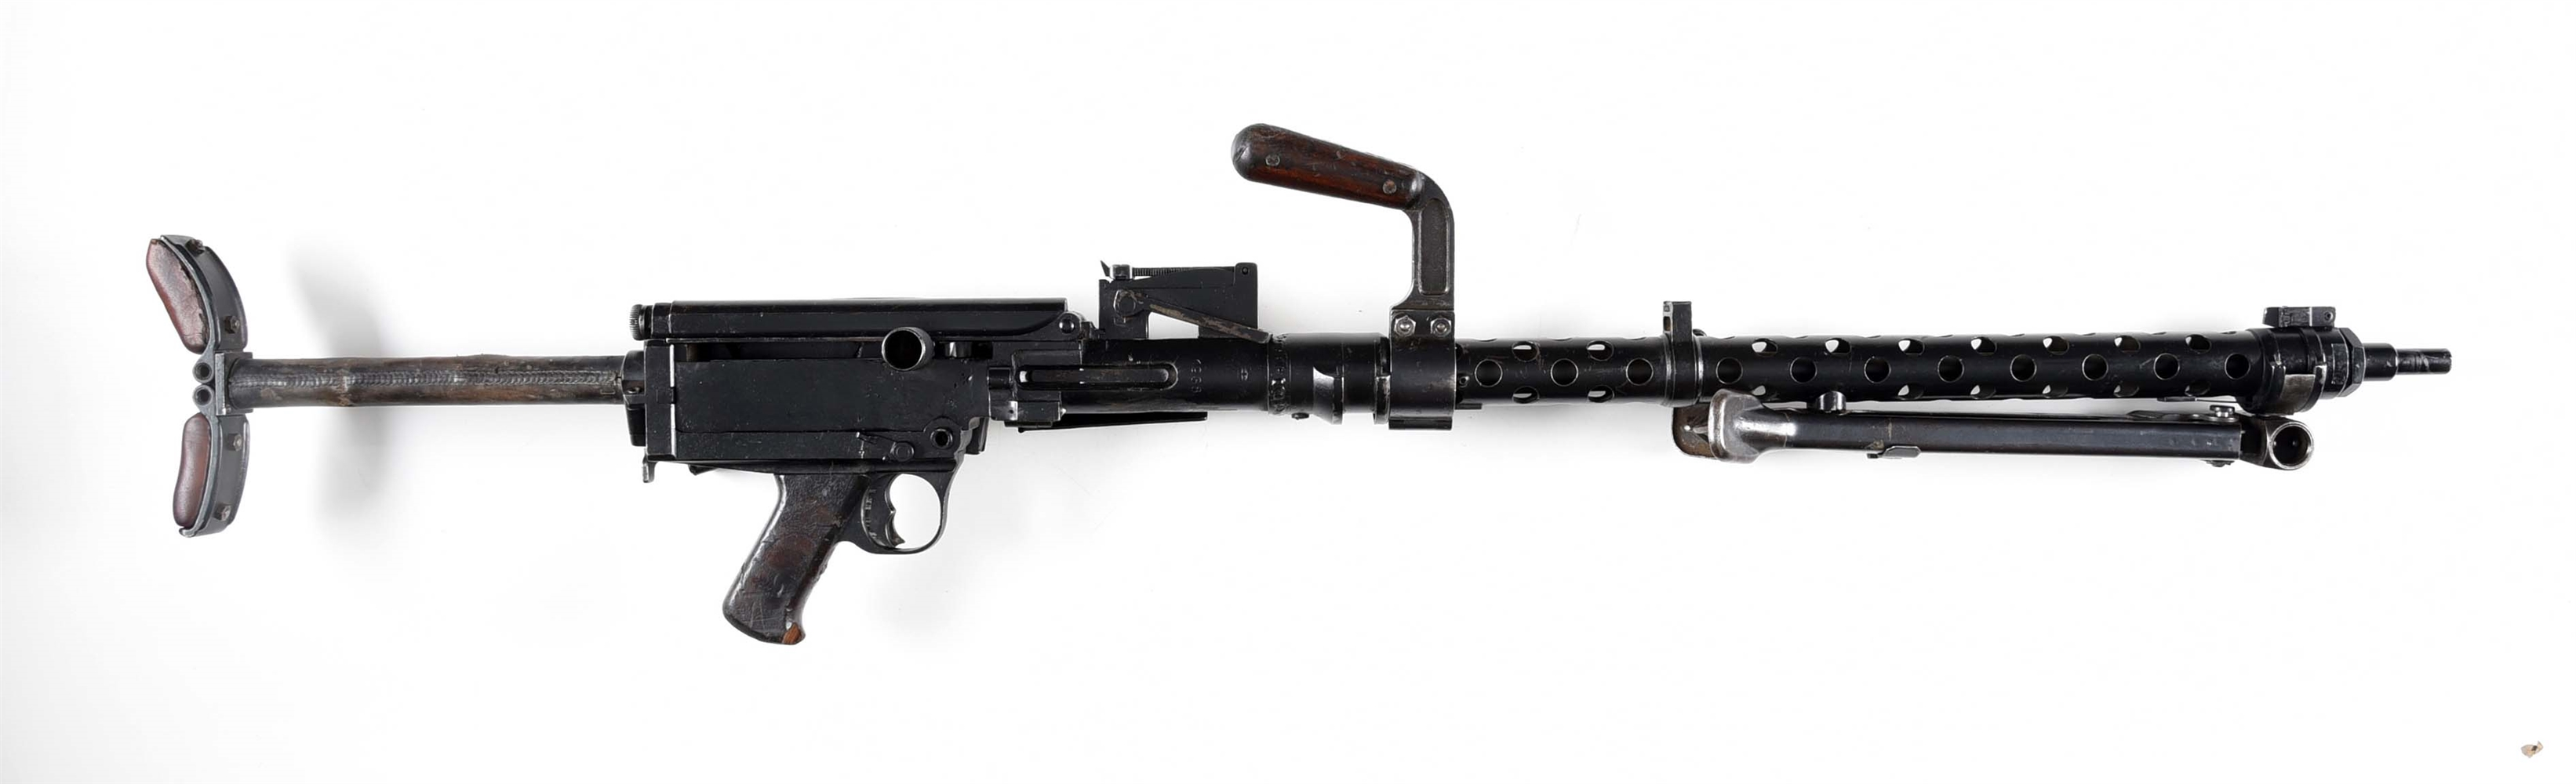 PORTUGUESE CONTRACT MG-13 DISPLAY MACHINE GUN.